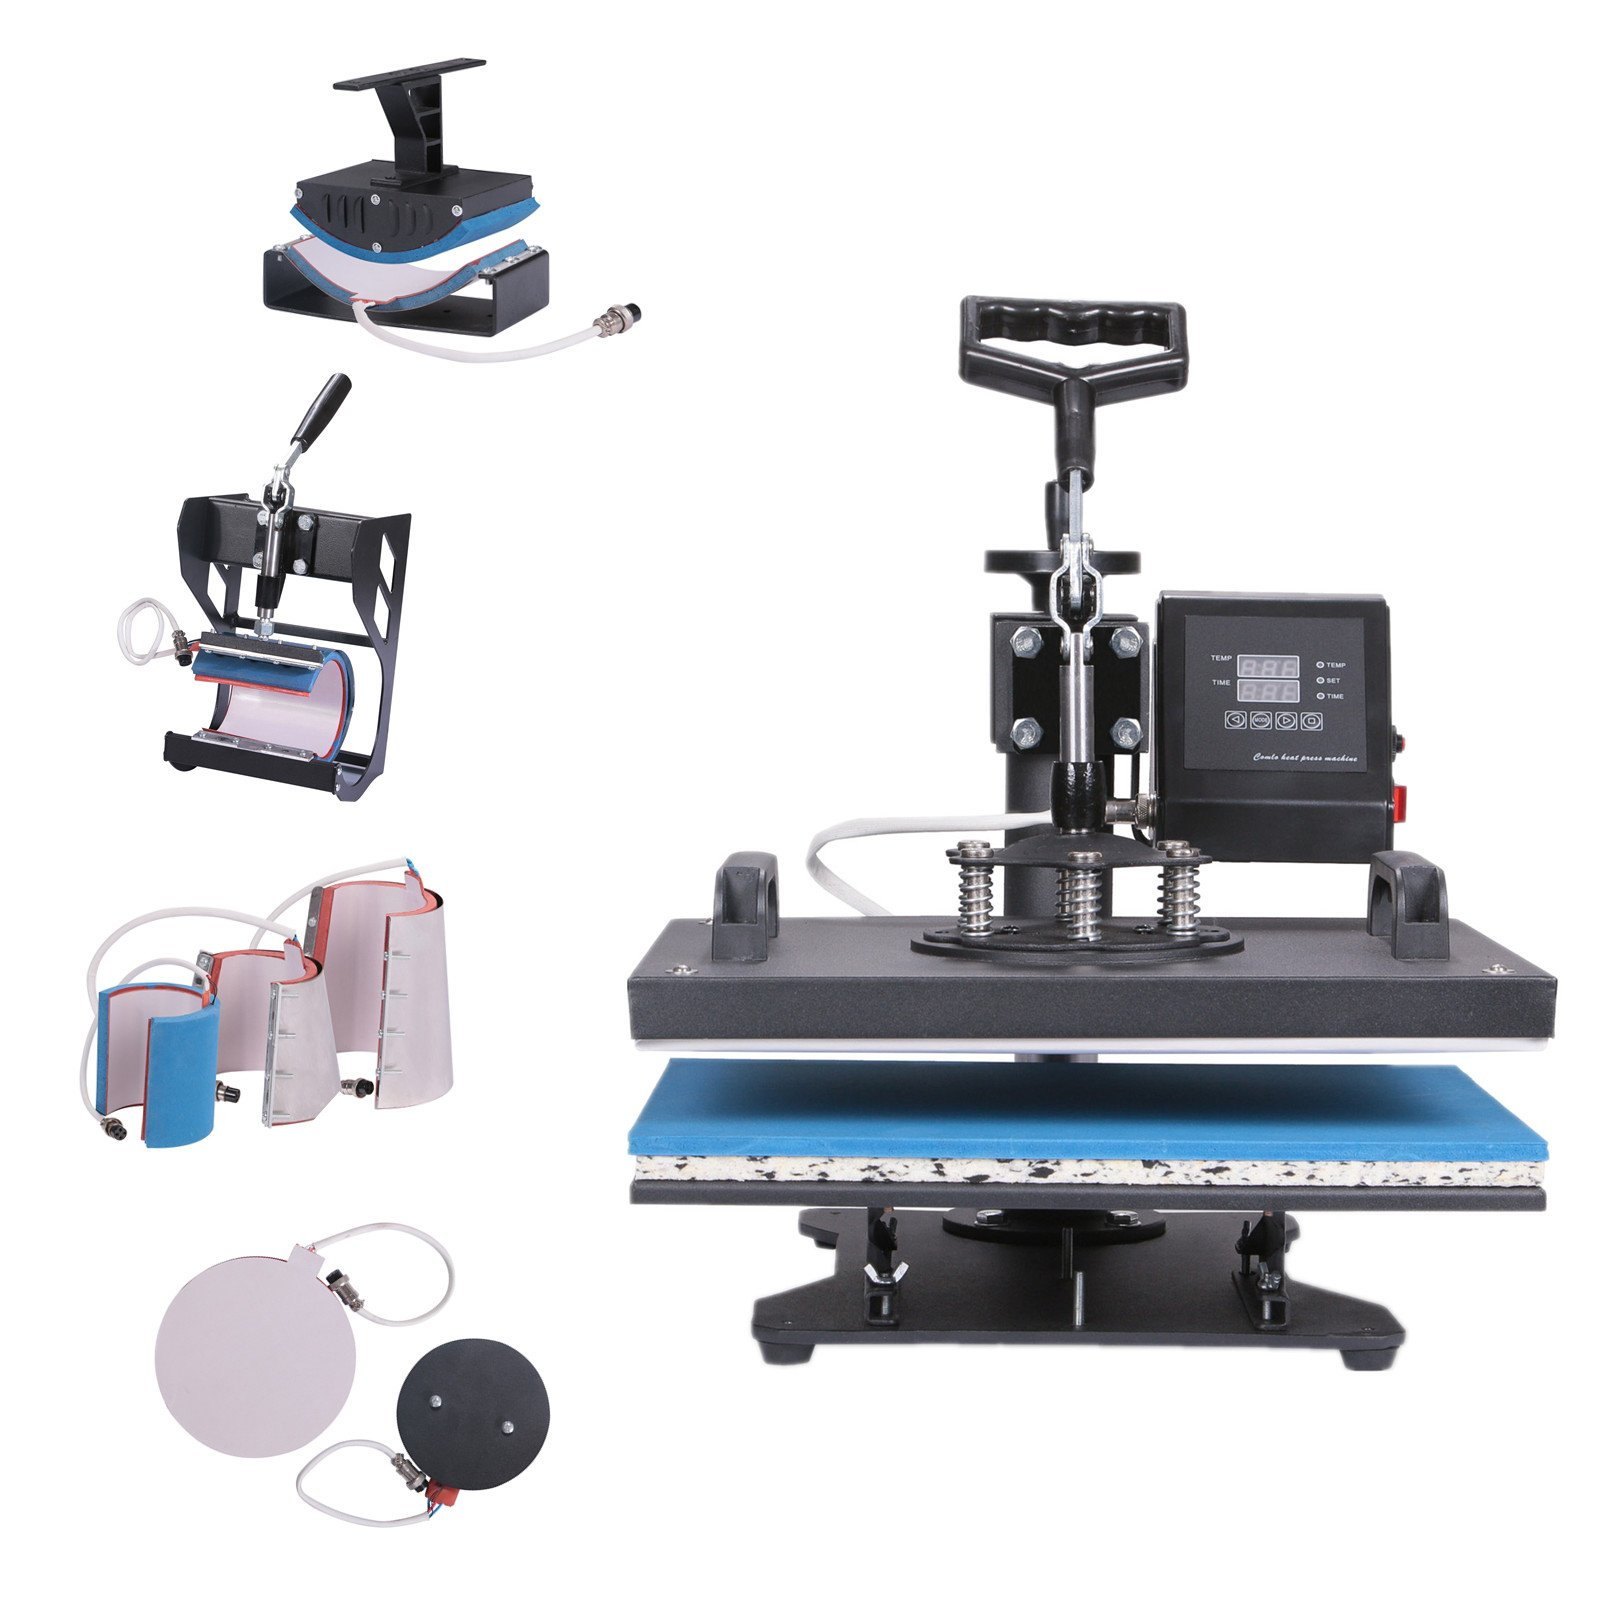 BestEquip Heat Press 8 in 1 Multifunctional T Shirt Heat Press 12x15 Inch Heat Press Machine for T-shirt Hat Mug Plate Cap Digital Control